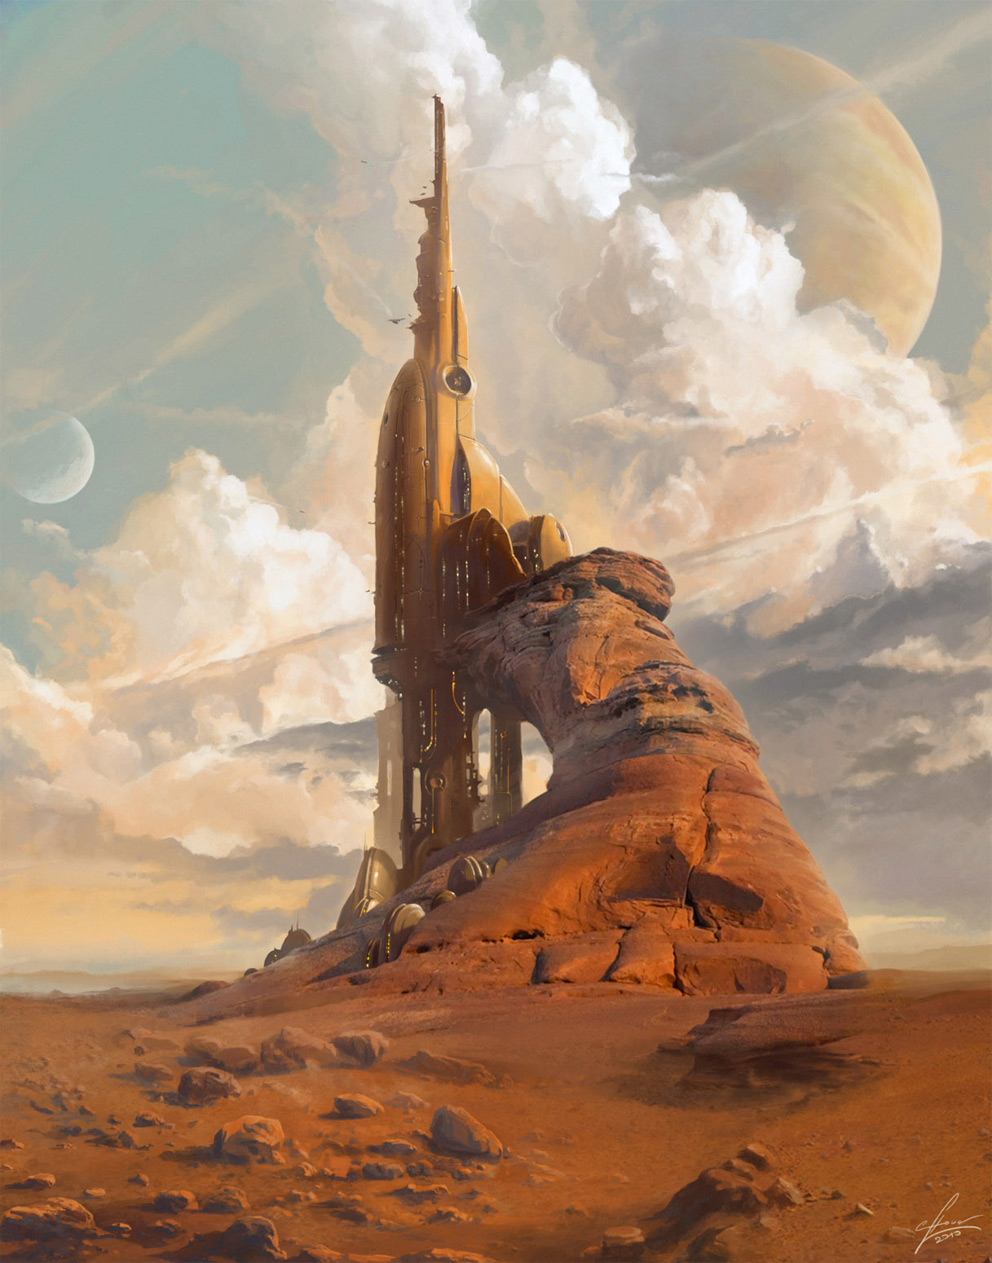 Sci Fi Stronghold : Sci fi art stronghold d digital paintings